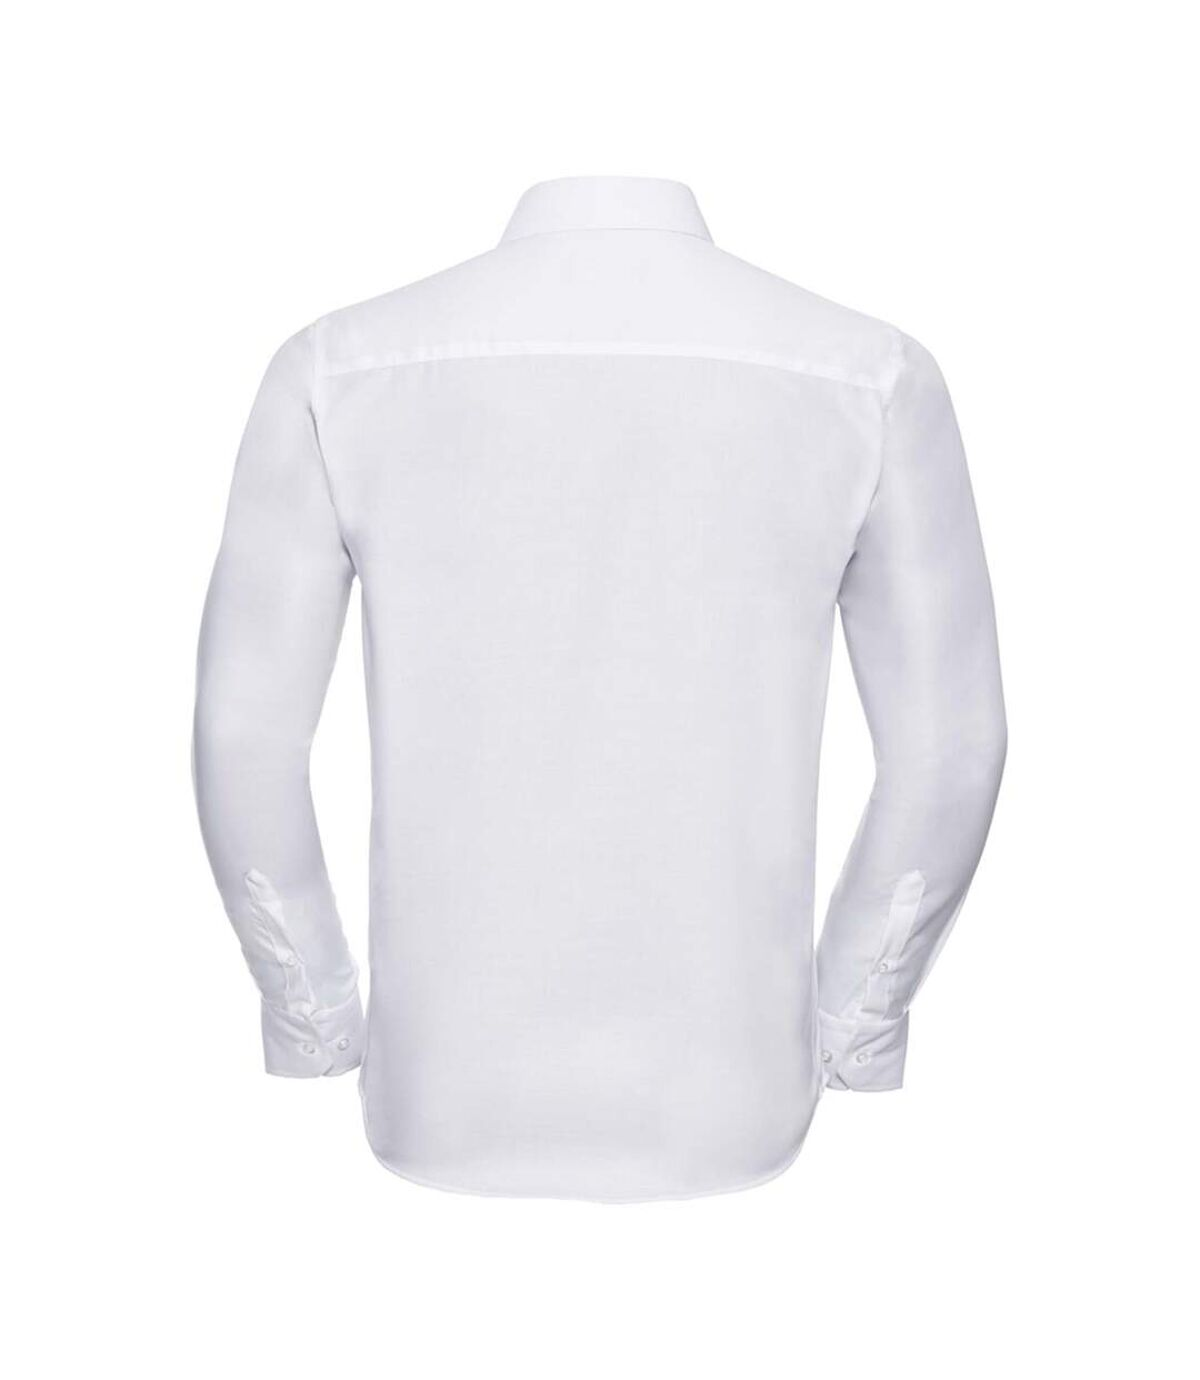 Russell Collection Mens Long Sleeve Tailored Ultimate Non-Iron Shirt (White) - UTBC1038